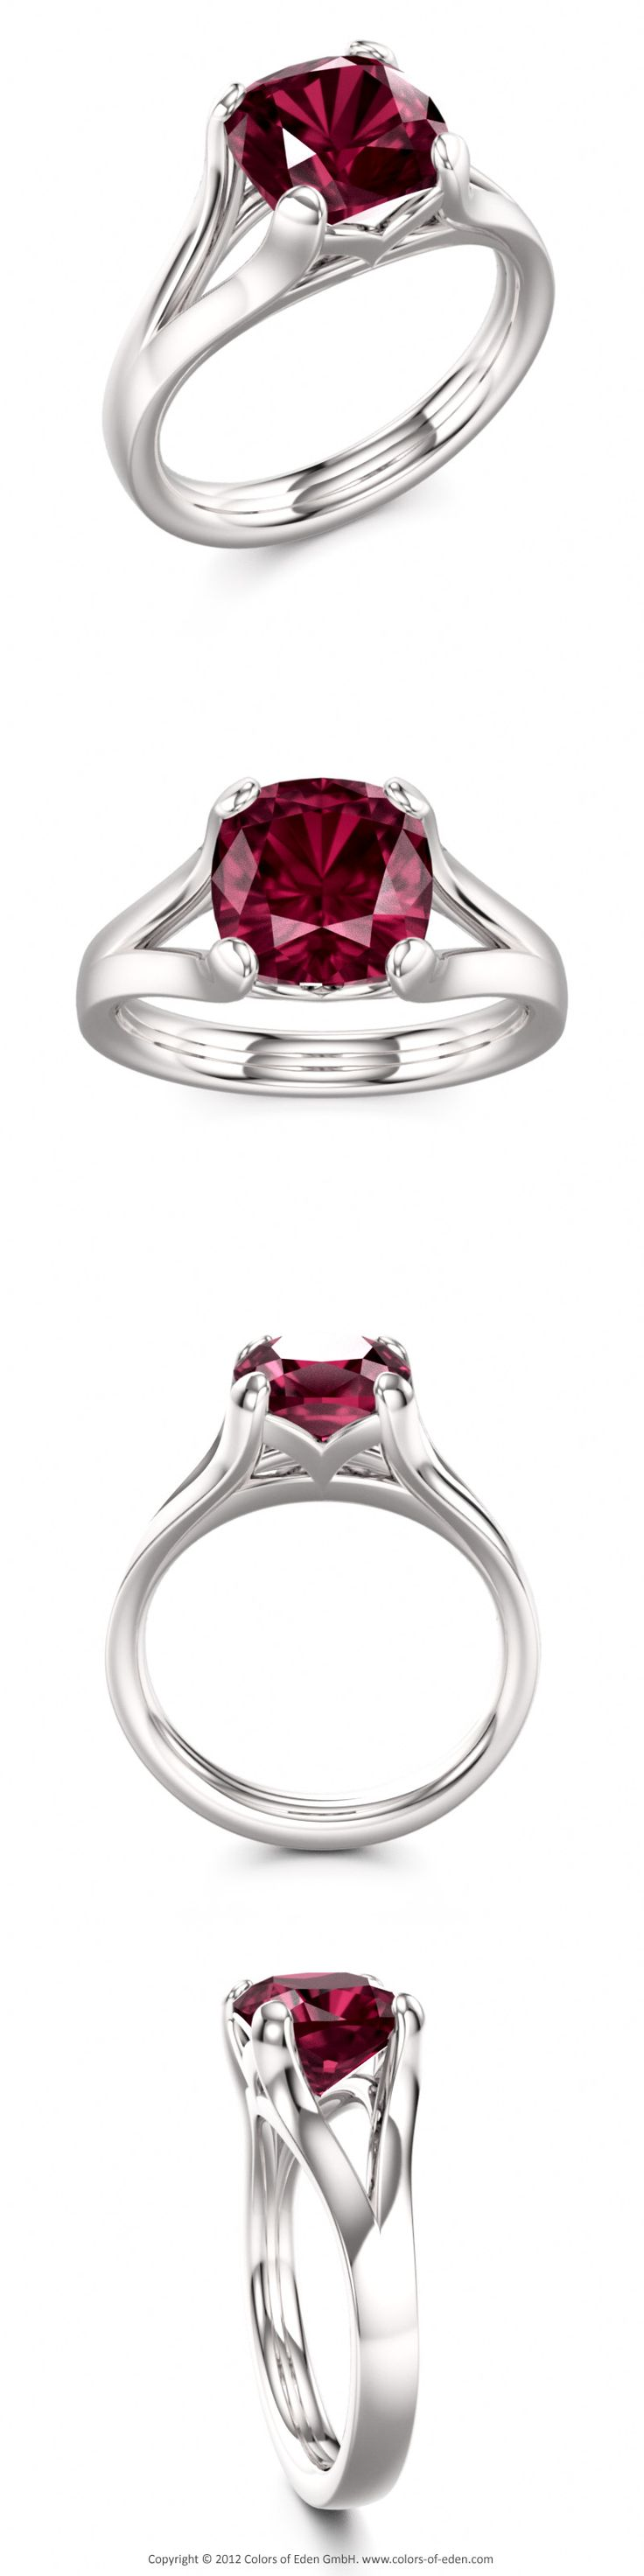 rings circa antique garnet engagement items sold ring term history facets taxonomy rhodolite of